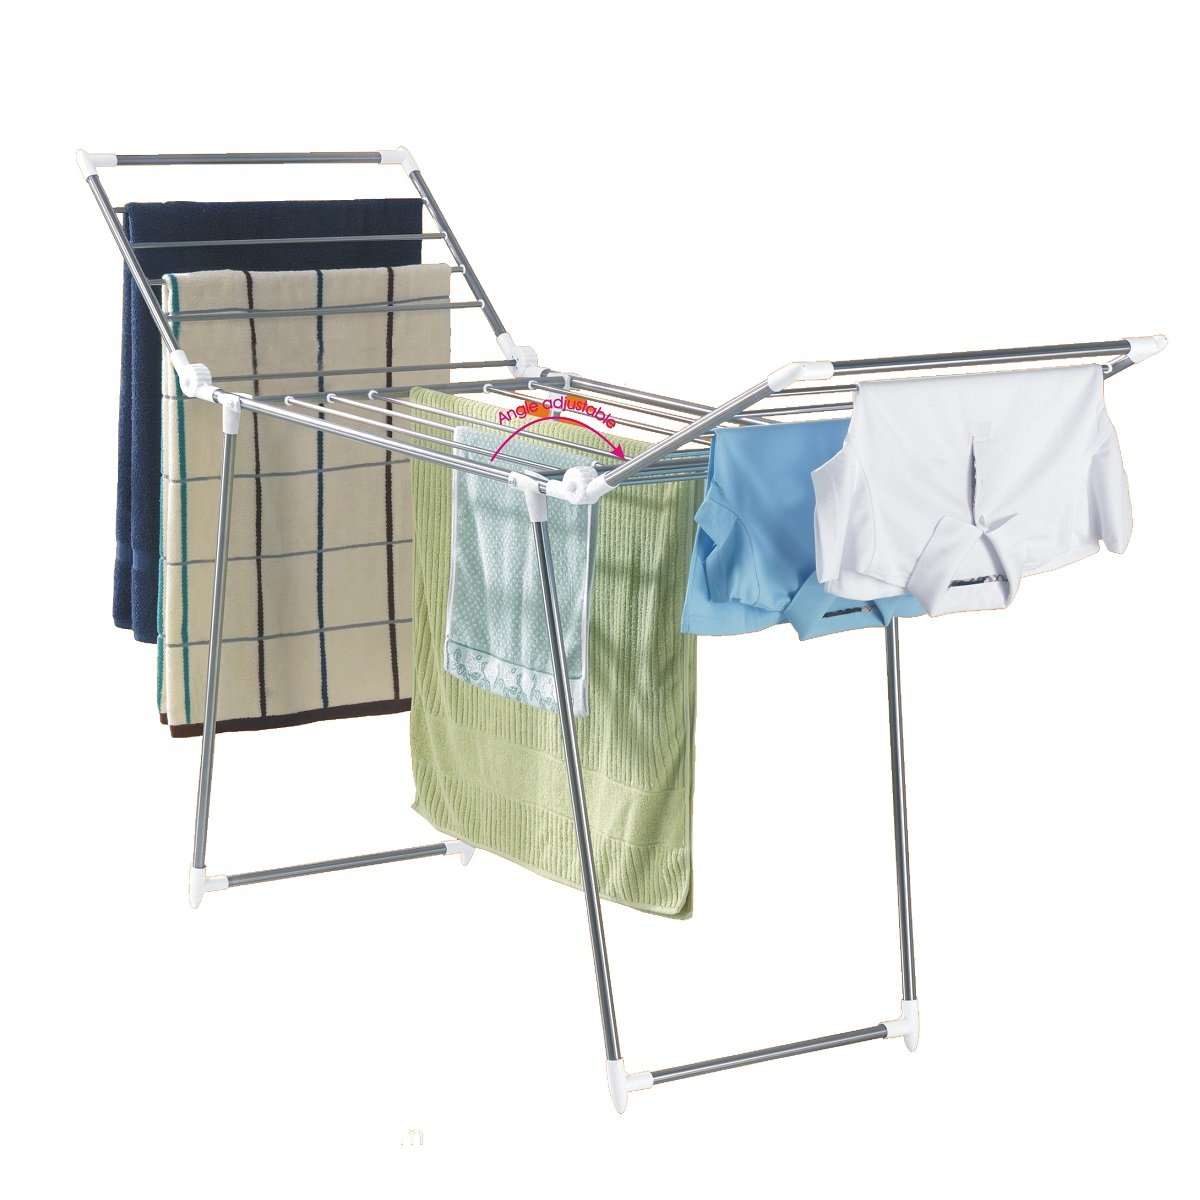 Maxplus Drying Rack w/ Dry Clothes 24Pegs